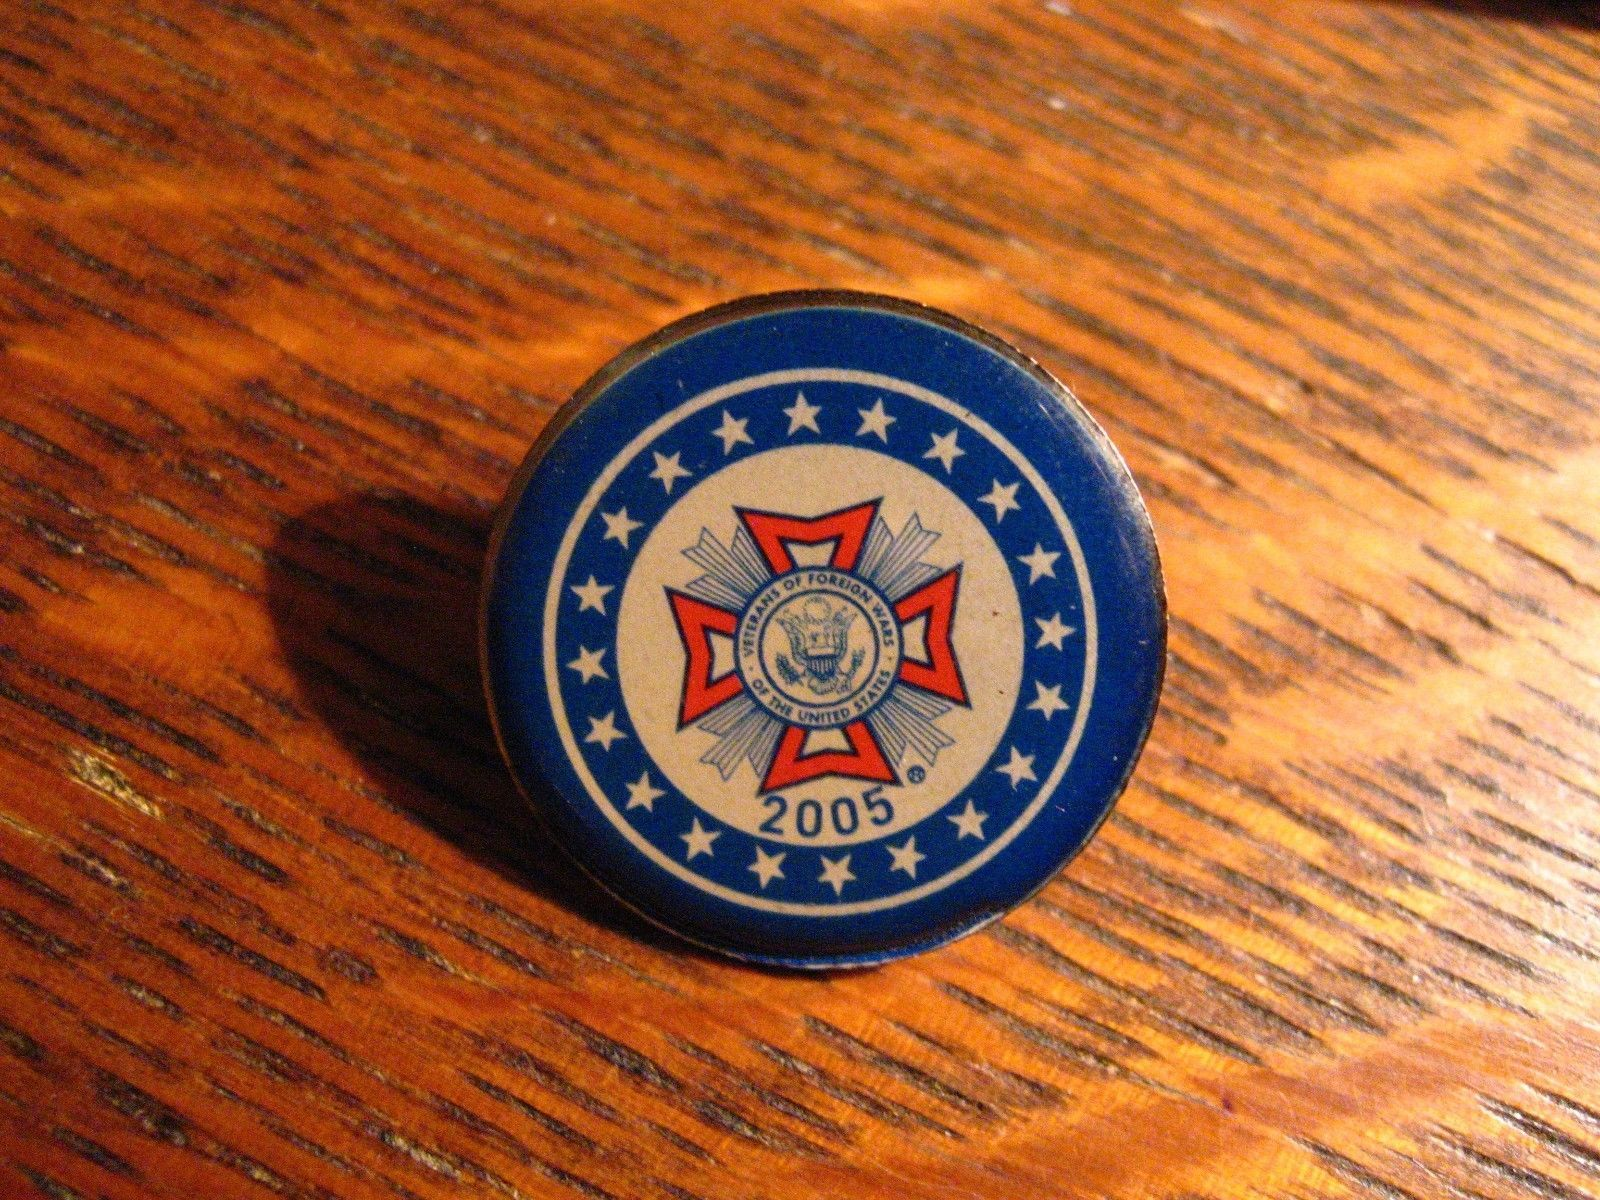 VFW Lapel Pin - Vintage 2005 USA Veterans Of Foreign Wars Military American Pin